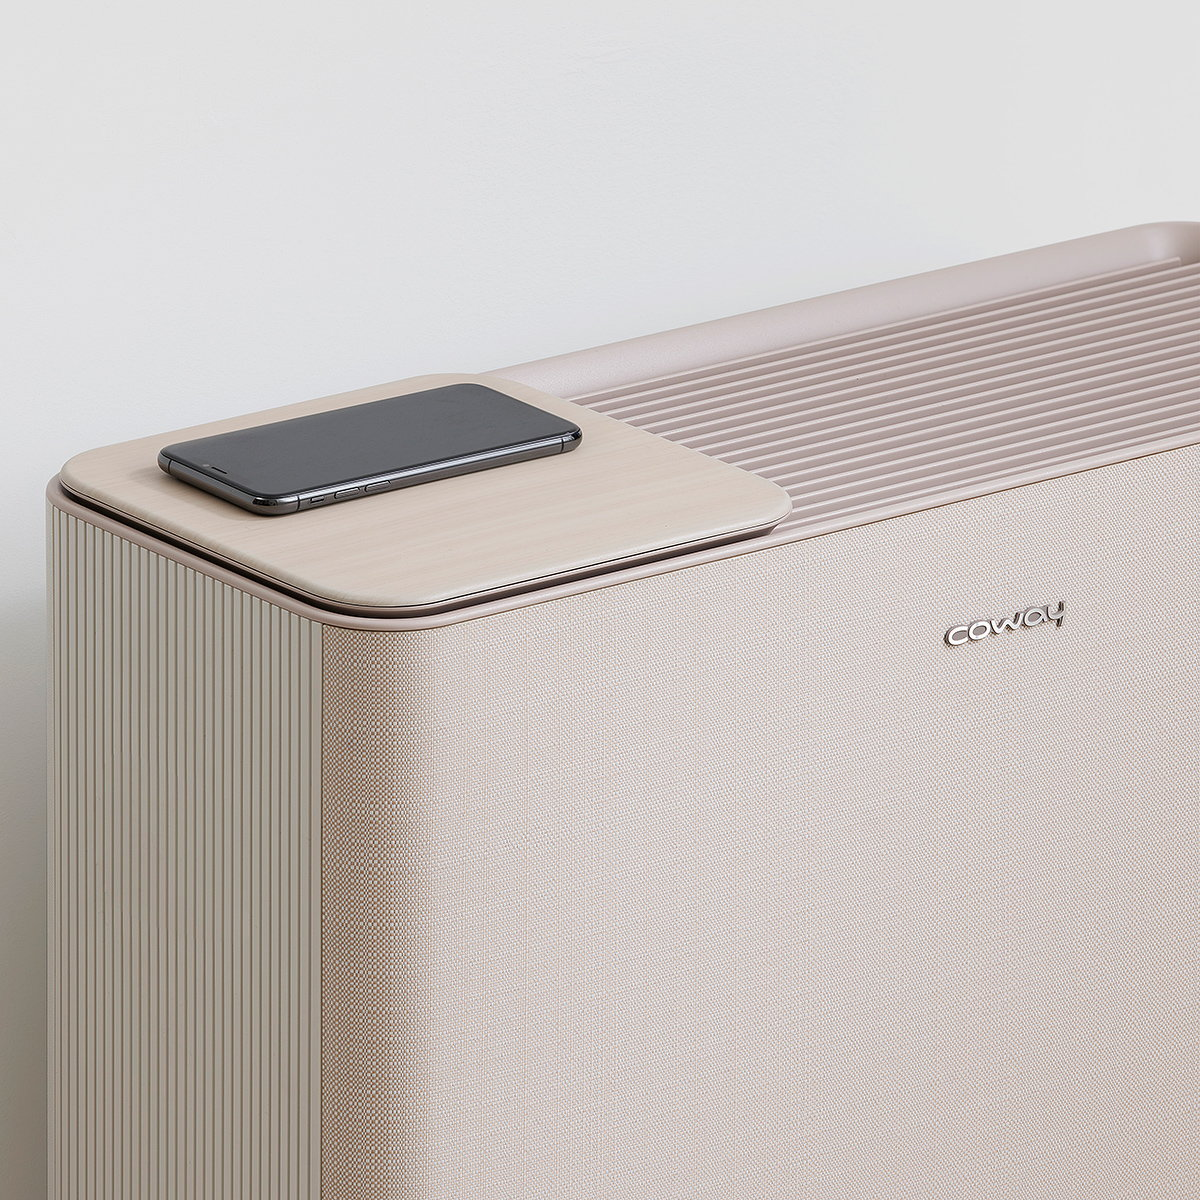 Coway Icon Air Purifier Wins 2020 IDEA Award